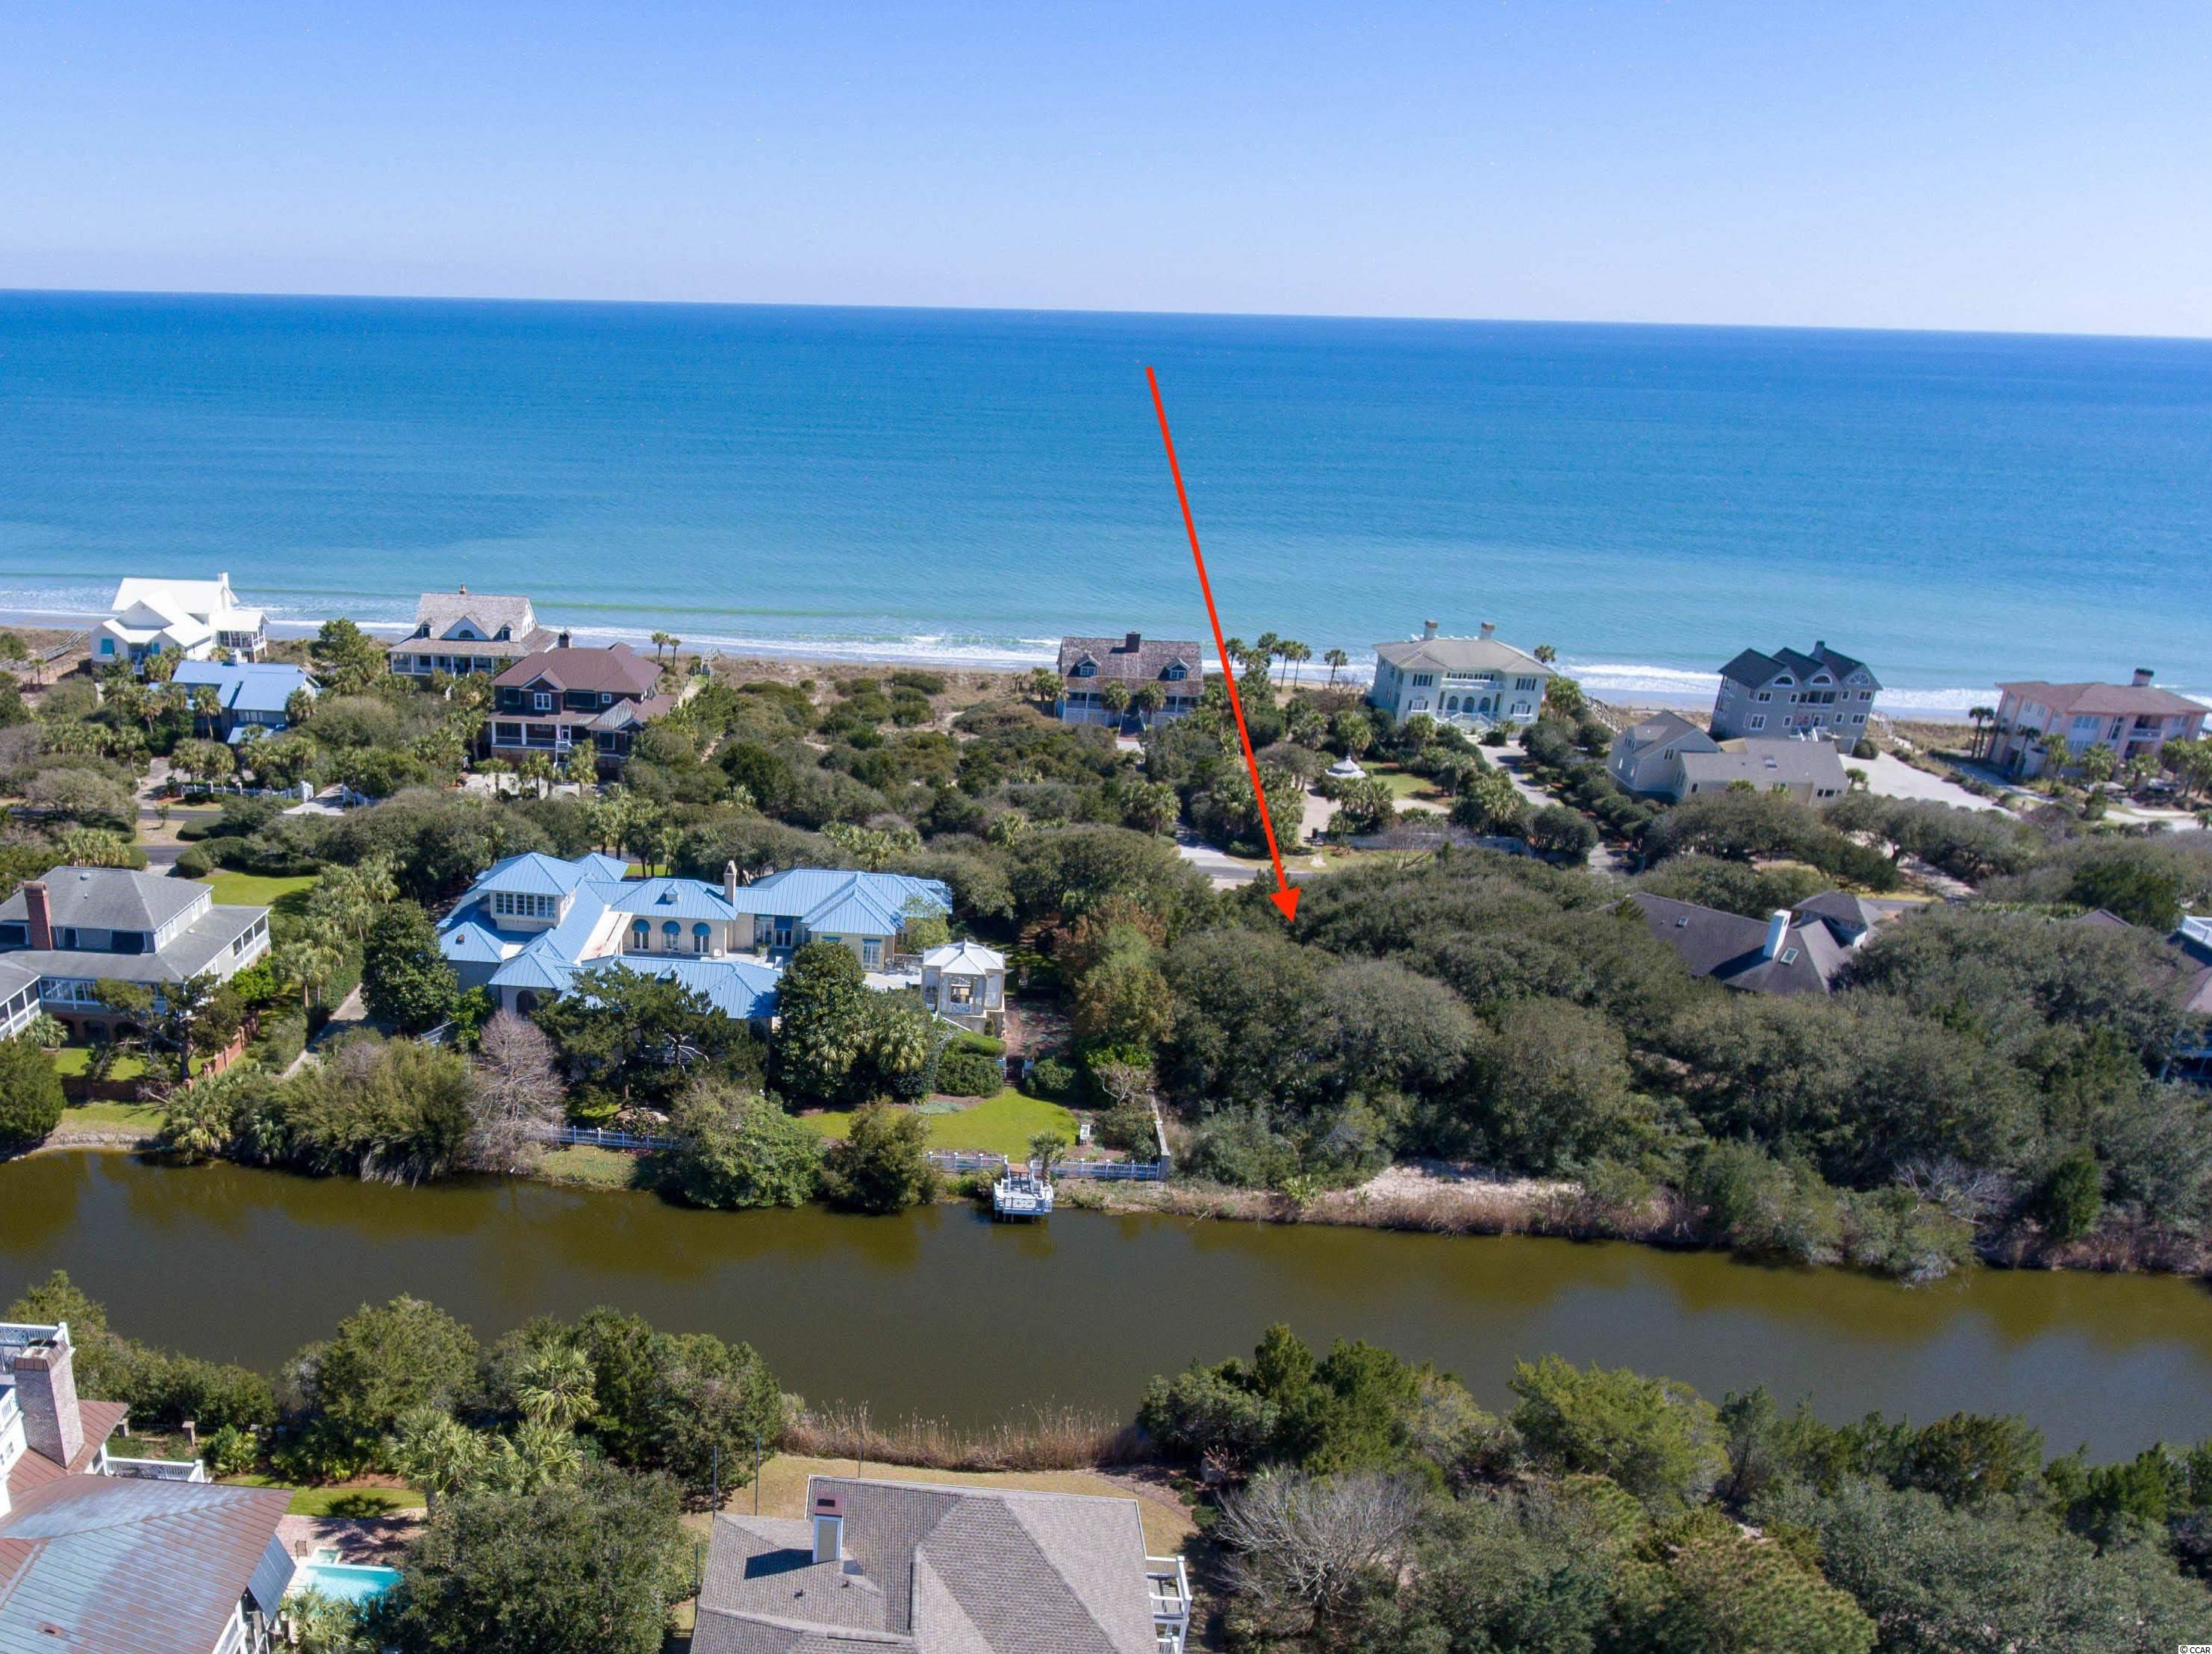 Lot 5 DeBordieu Blvd. is a beautiful 2nd row property with direct access to the beach close by. The lot is heavily wooded with several Live Oaks and the back of the property overlooks Yahanney lake. This is a great opportunity to be in close proximity to the oceanfront for any beach lover.